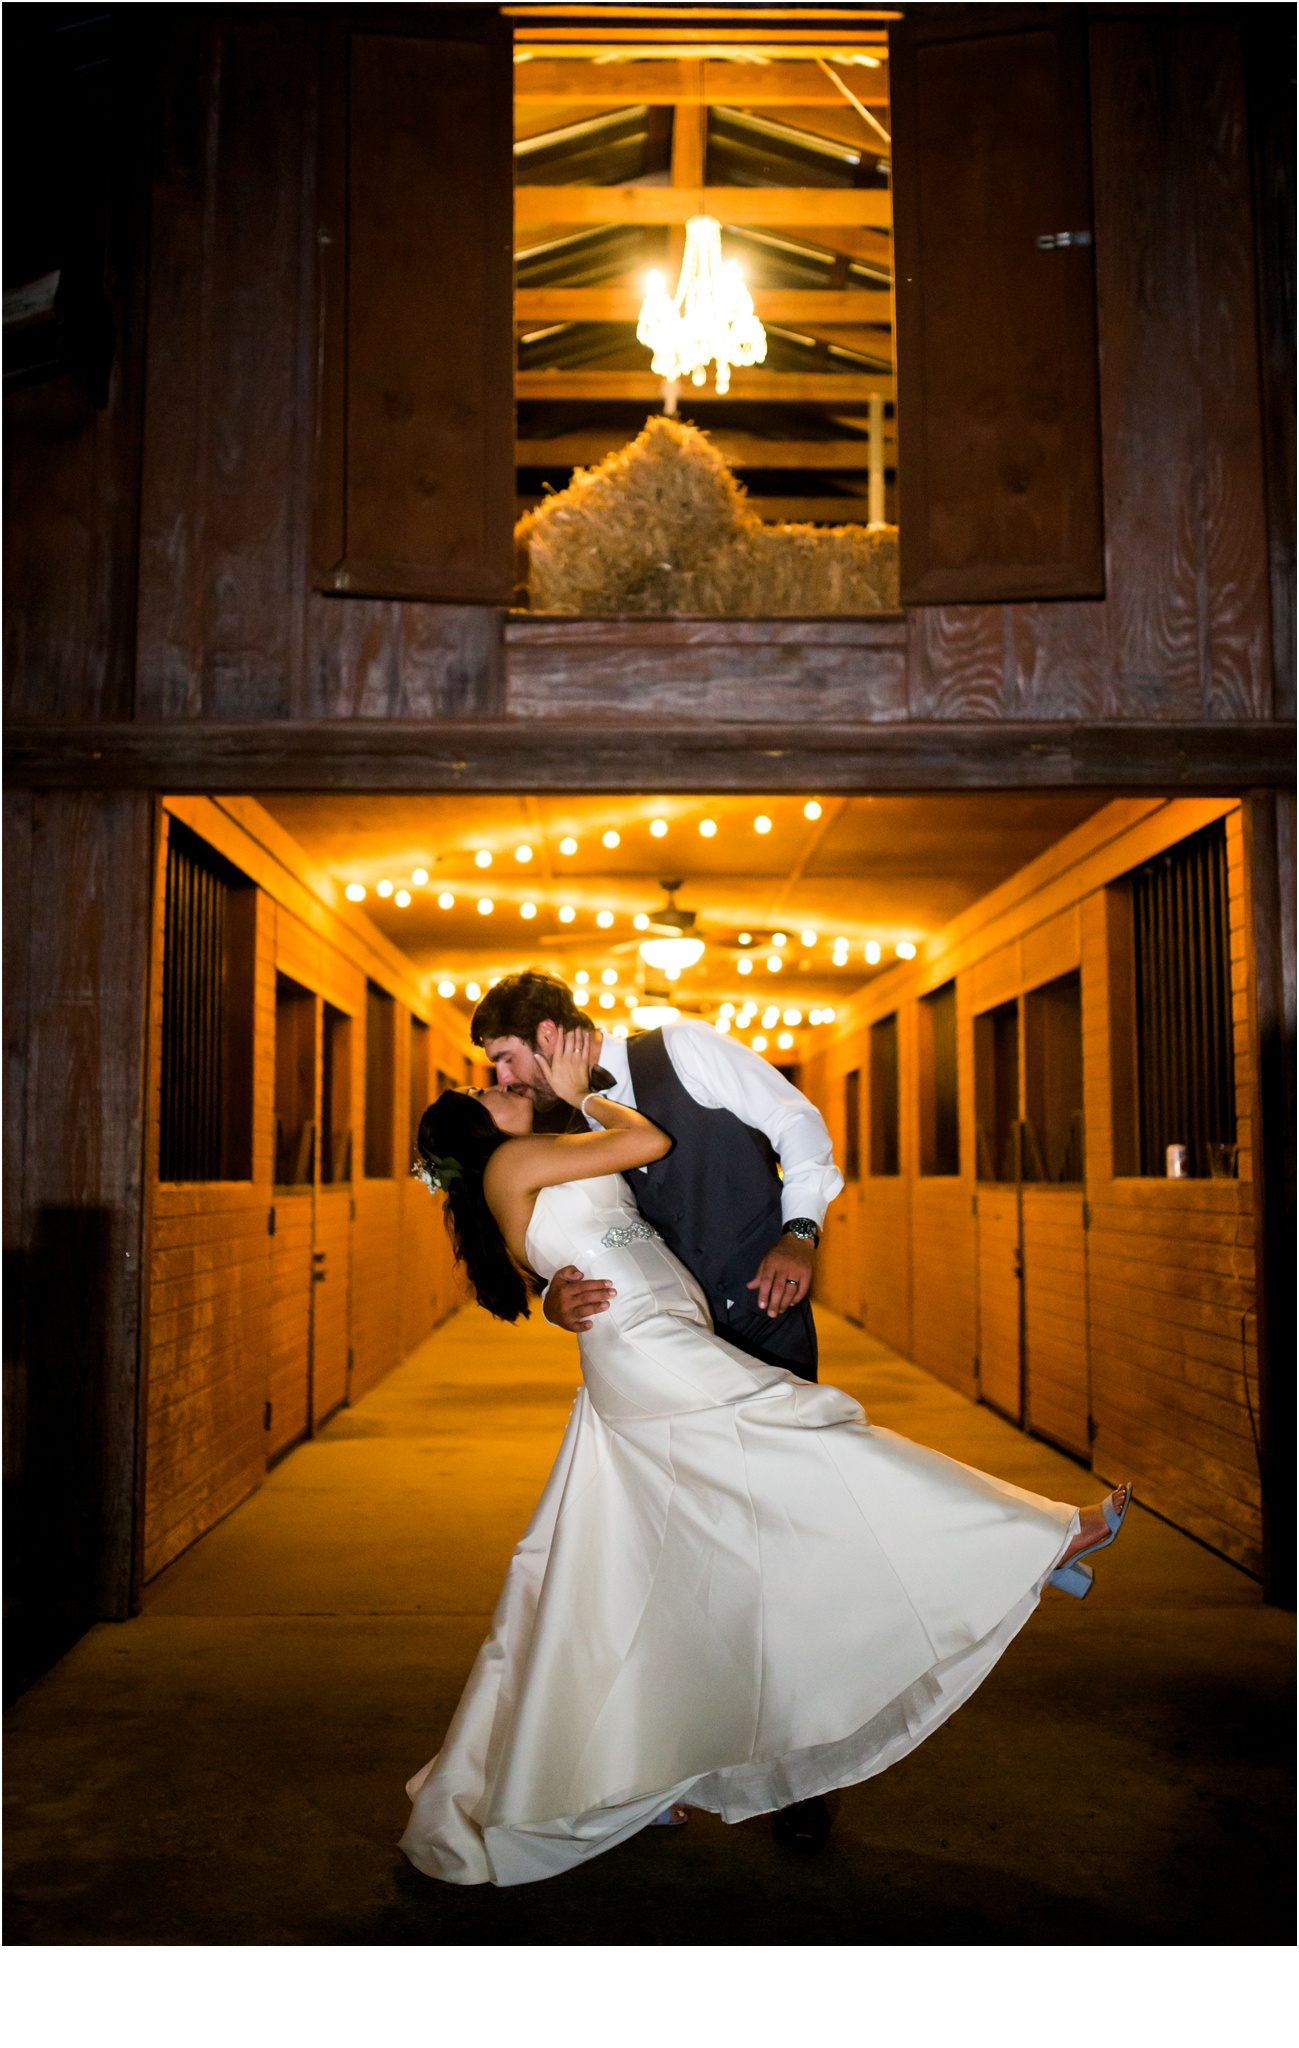 Rainey_Gregg_Photography_St._Simons_Island_Georgia_California_Wedding_Portrait_Photography_0985.jpg